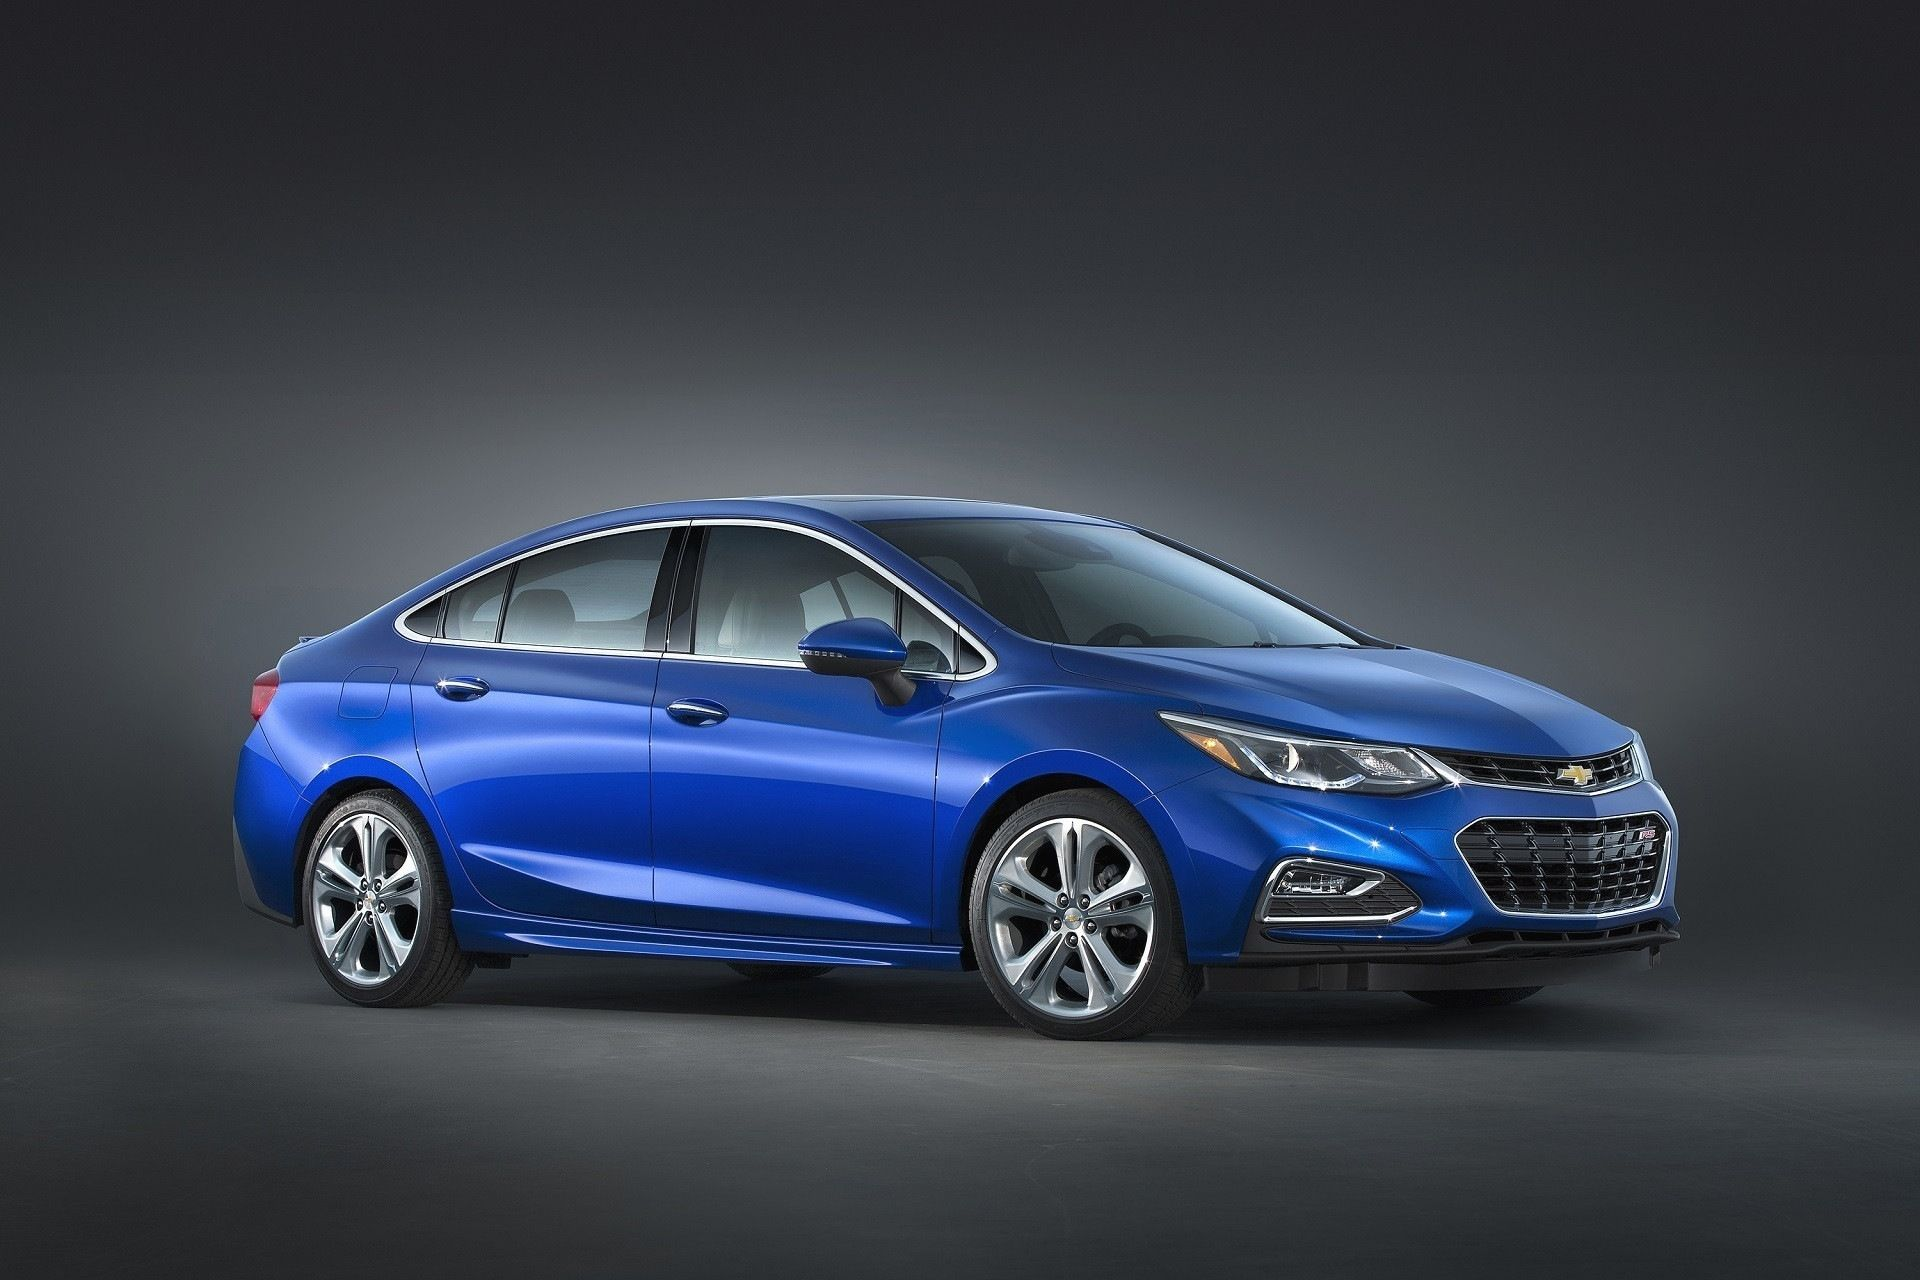 Where Is 2020 Chevy Cruze Built Chevrolet Cruze 2016 Chevy